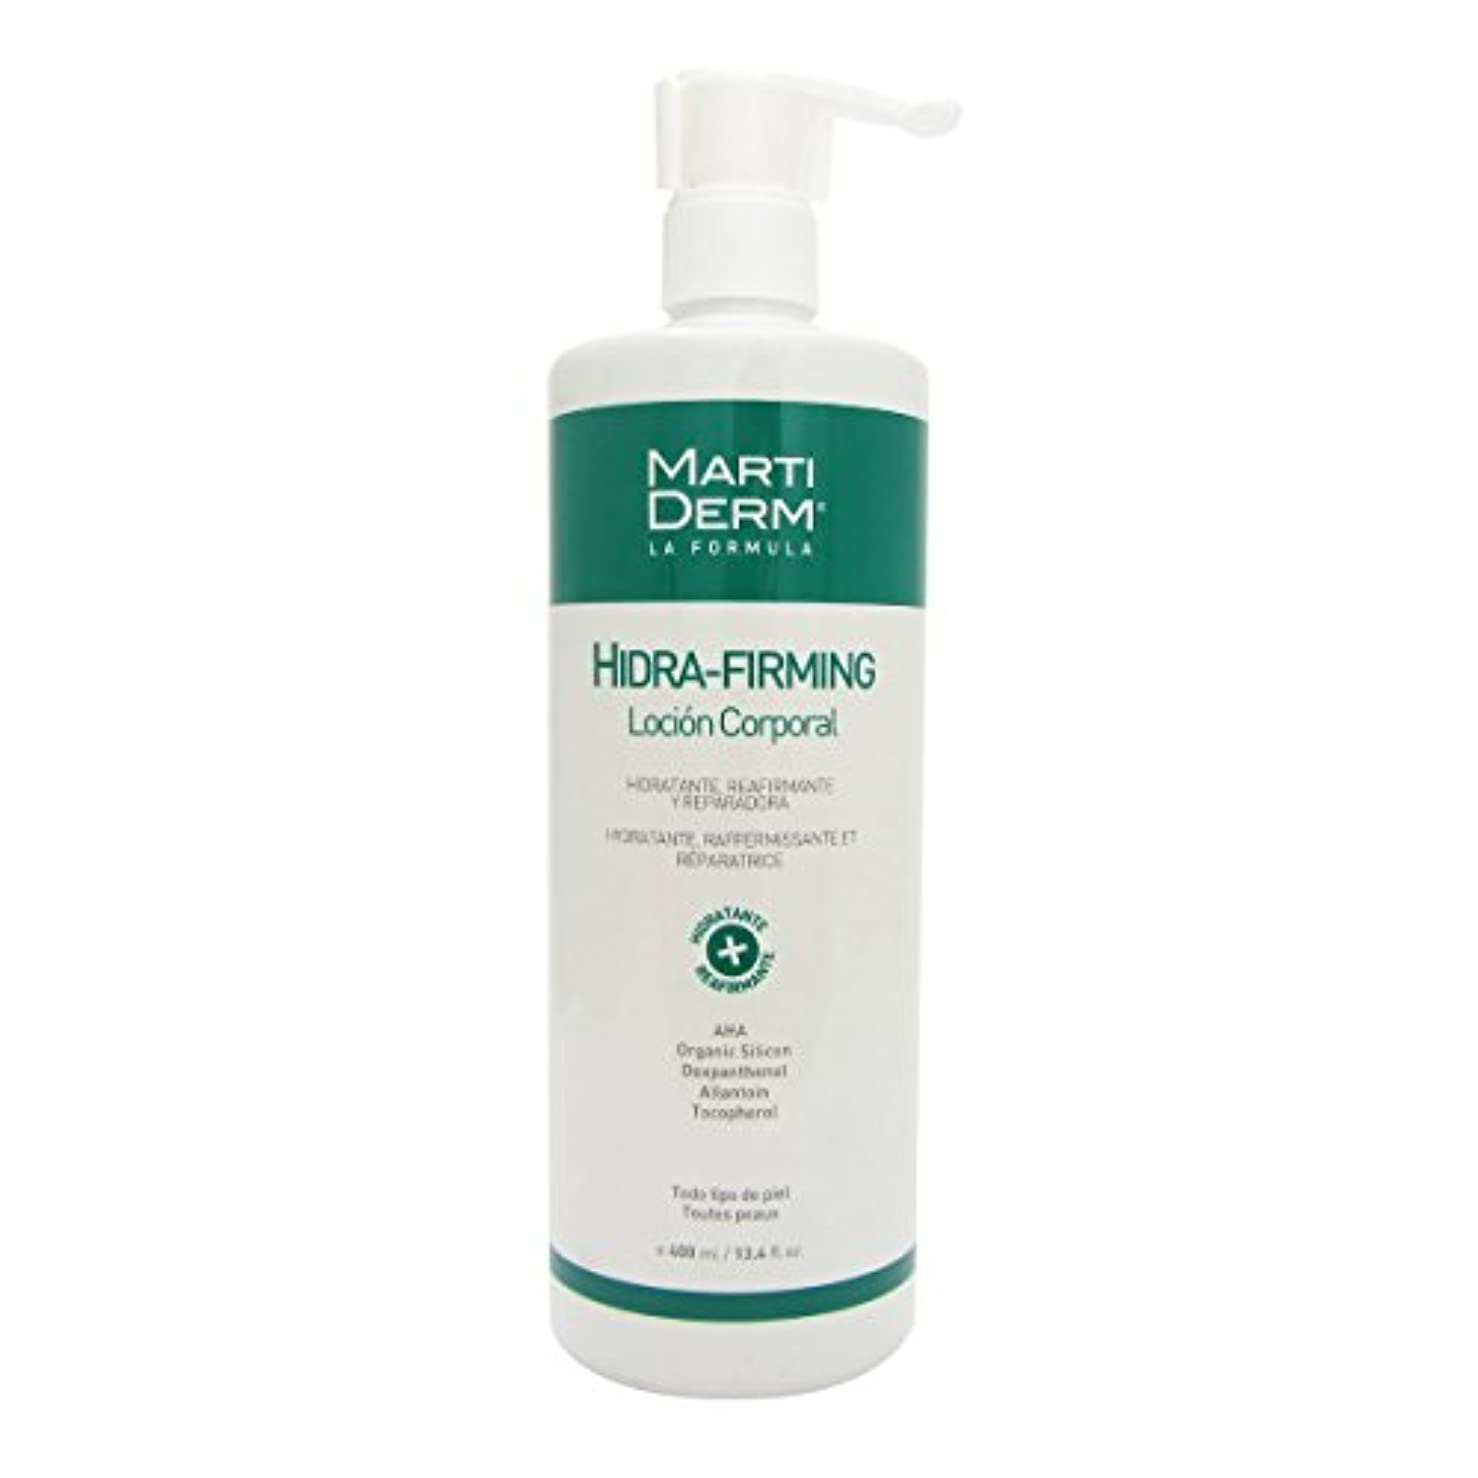 アンテナ拒否苦Martiderm Hidra-firming Body Lotion 400ml [並行輸入品]